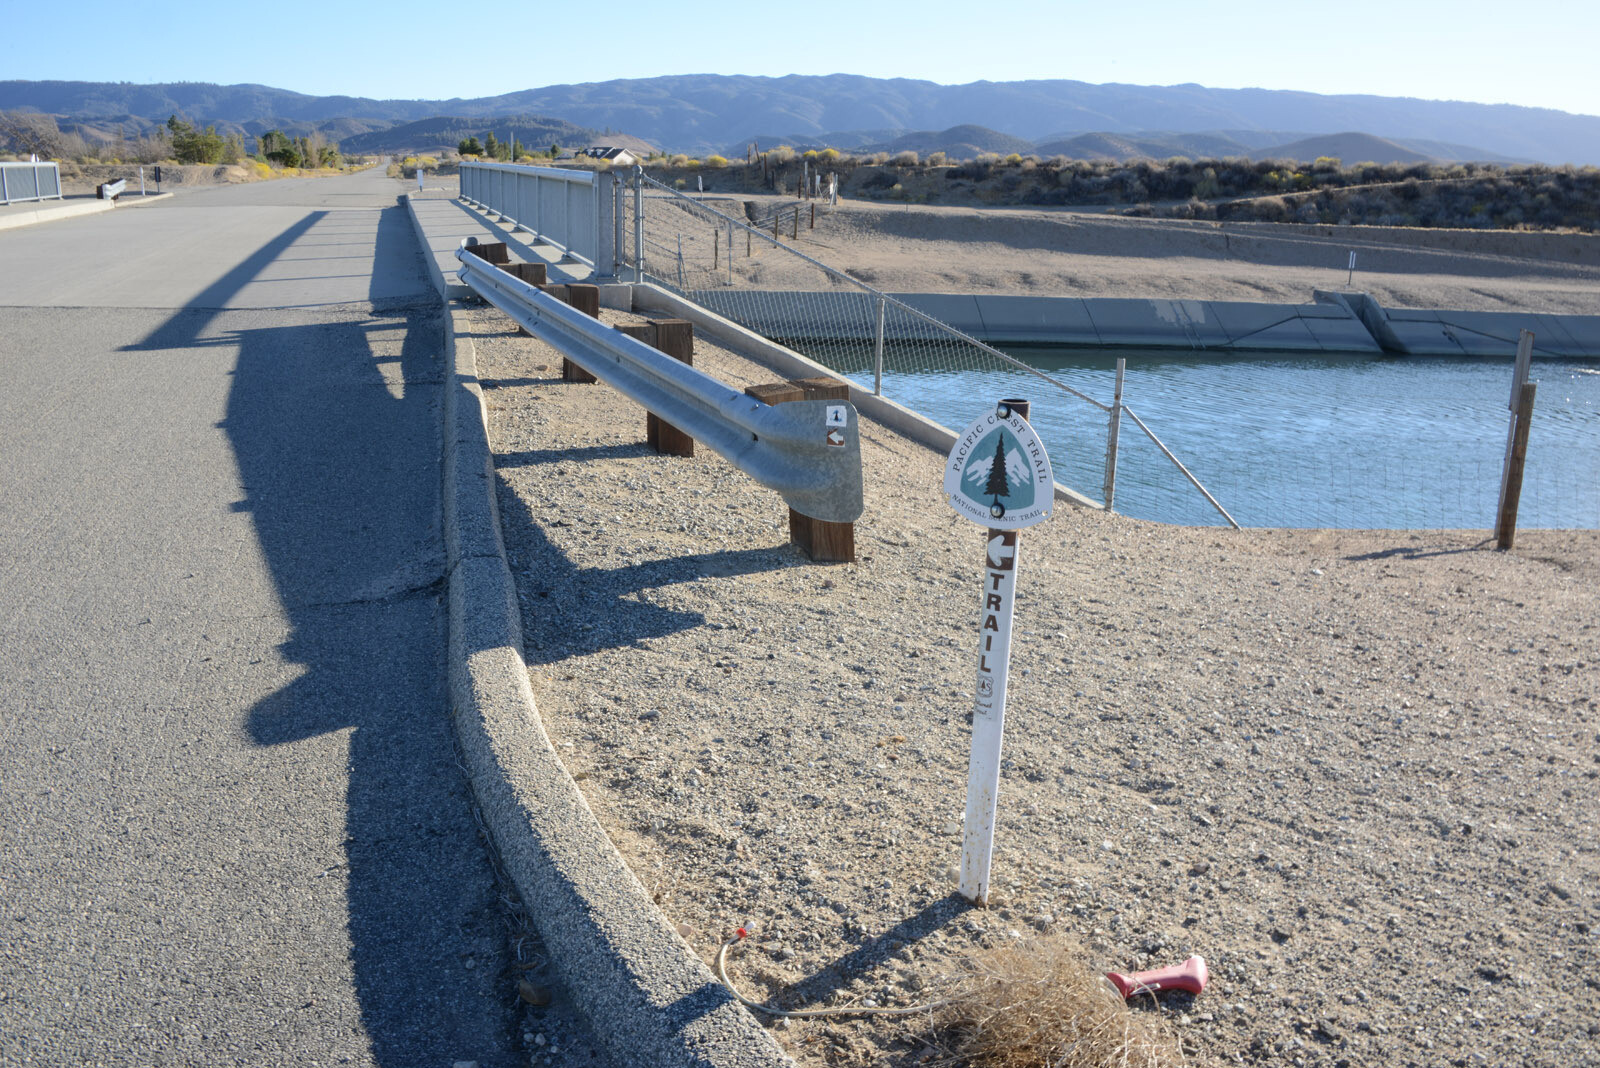 Two Of The Three Aqueducts That Supply Water To Southern California Cross At This Point In The Antelope Valley Water In The Los Angeles Aqueduct